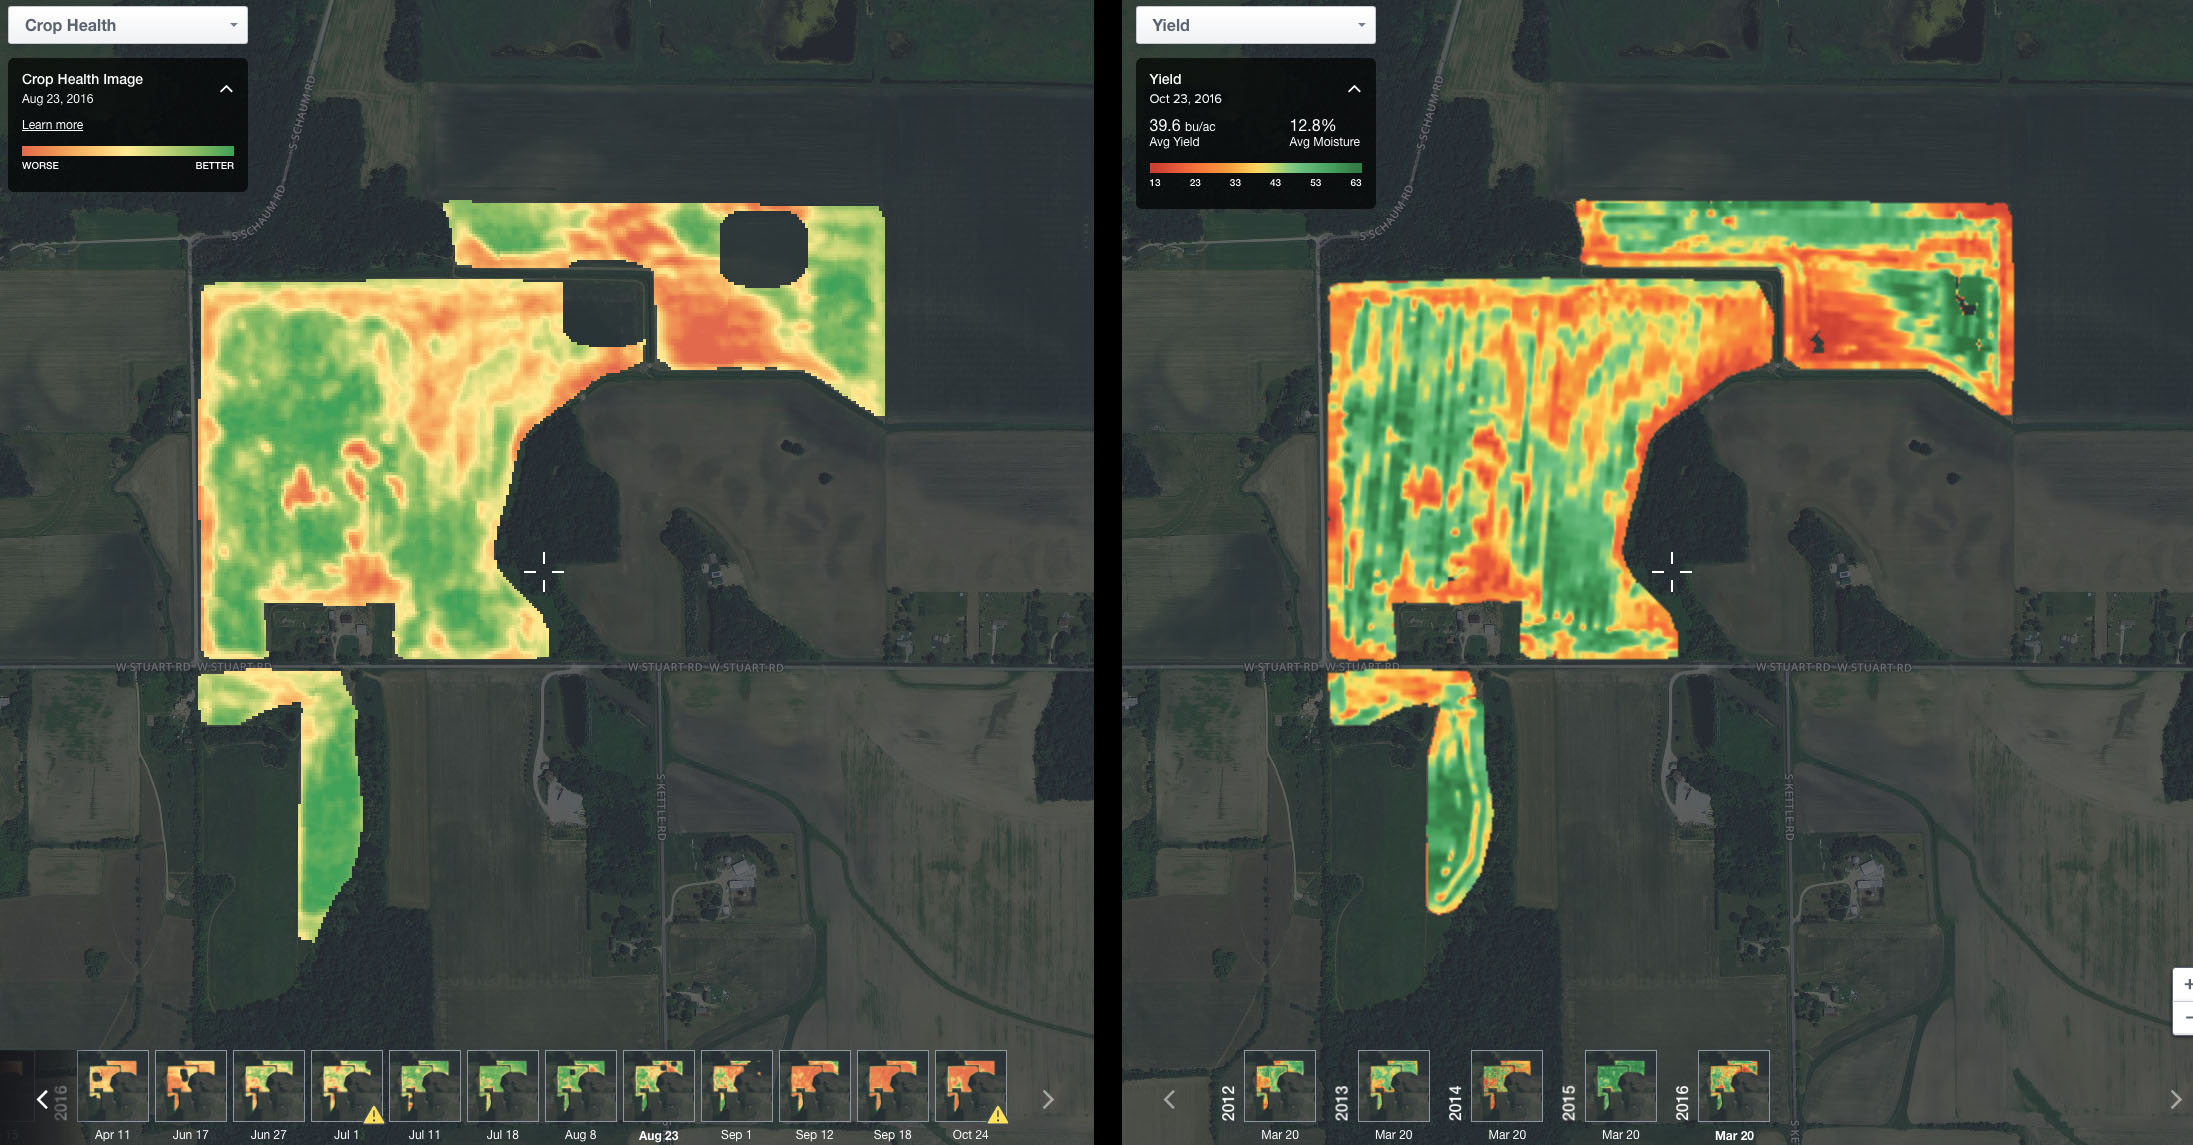 Crop Health Image (left) and yield map (right) for our soybean field that got SDS